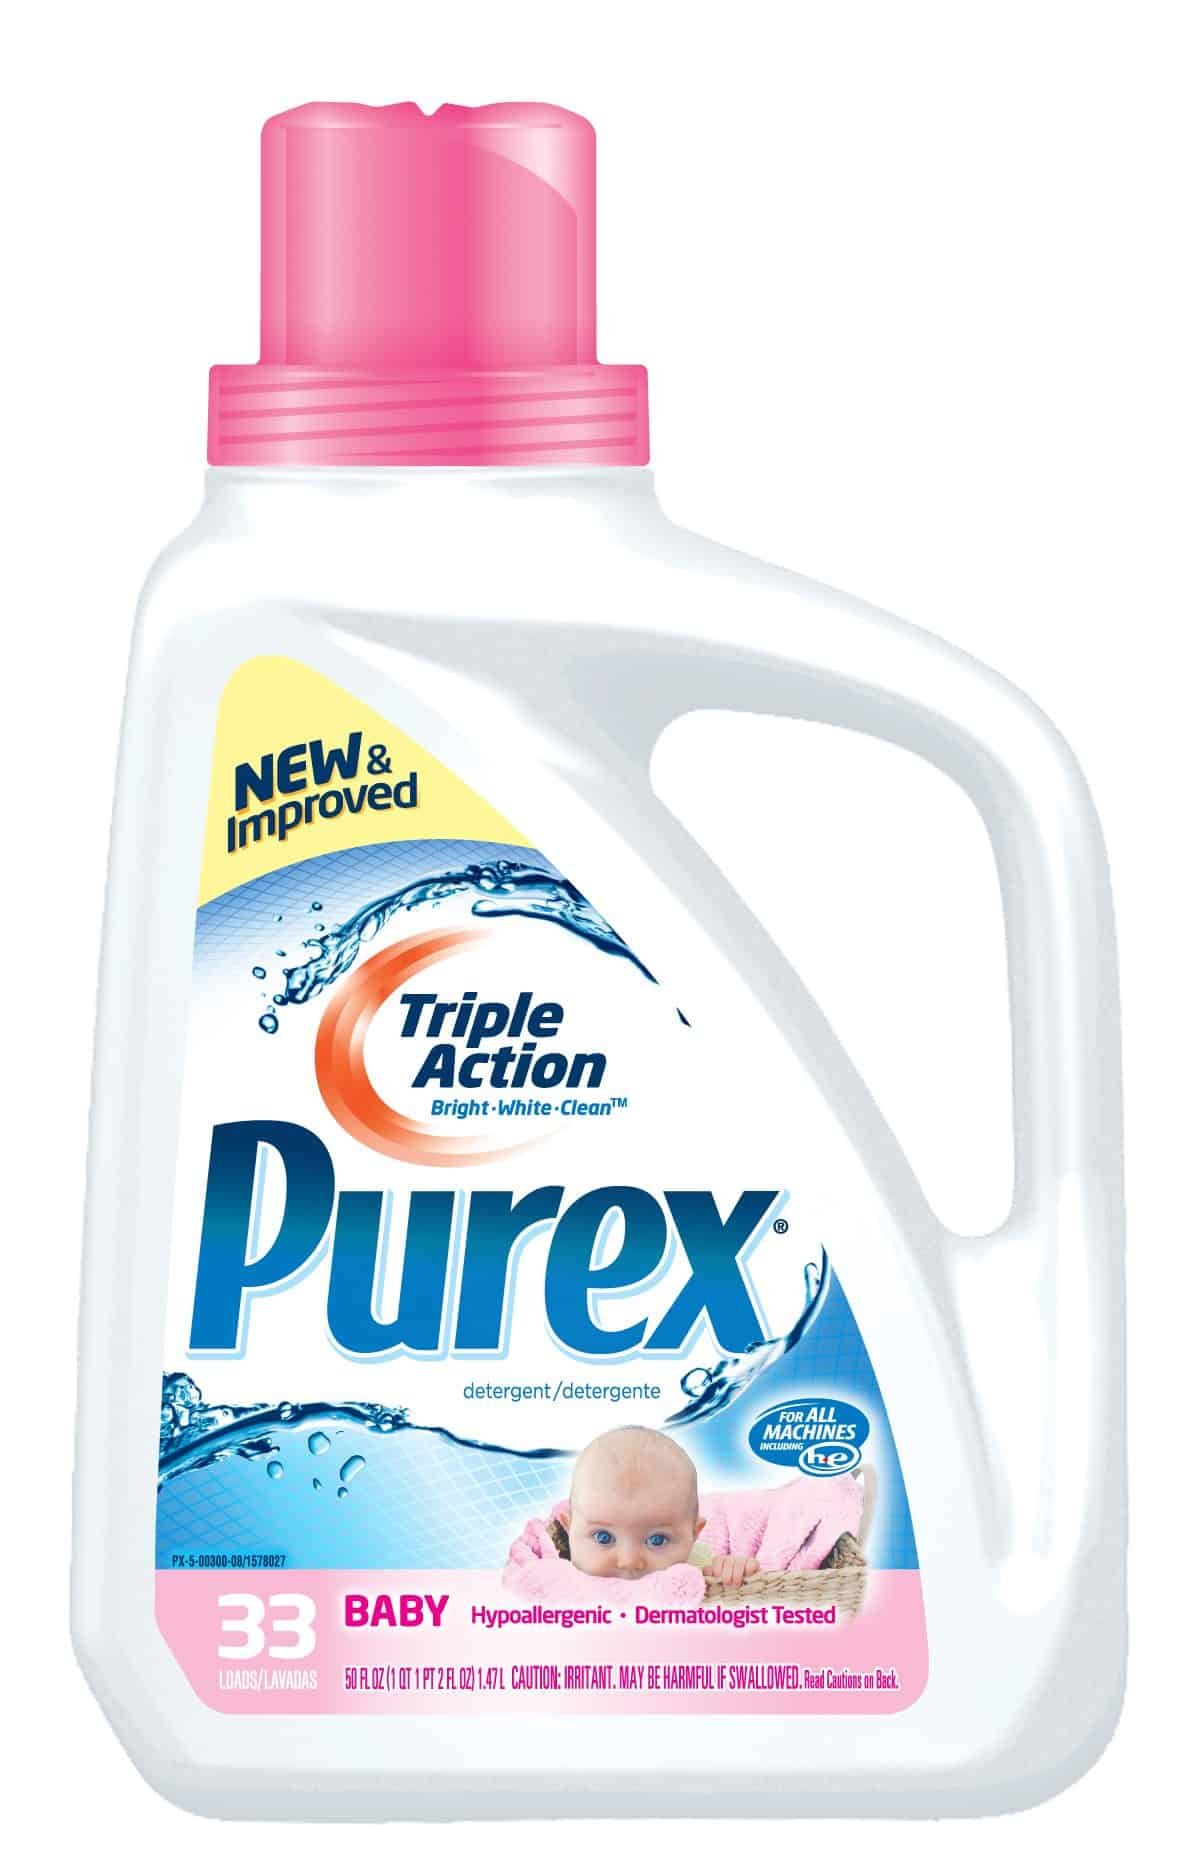 Giveaway – 2 Coupons For FREE Purex Baby Laundry Detergent